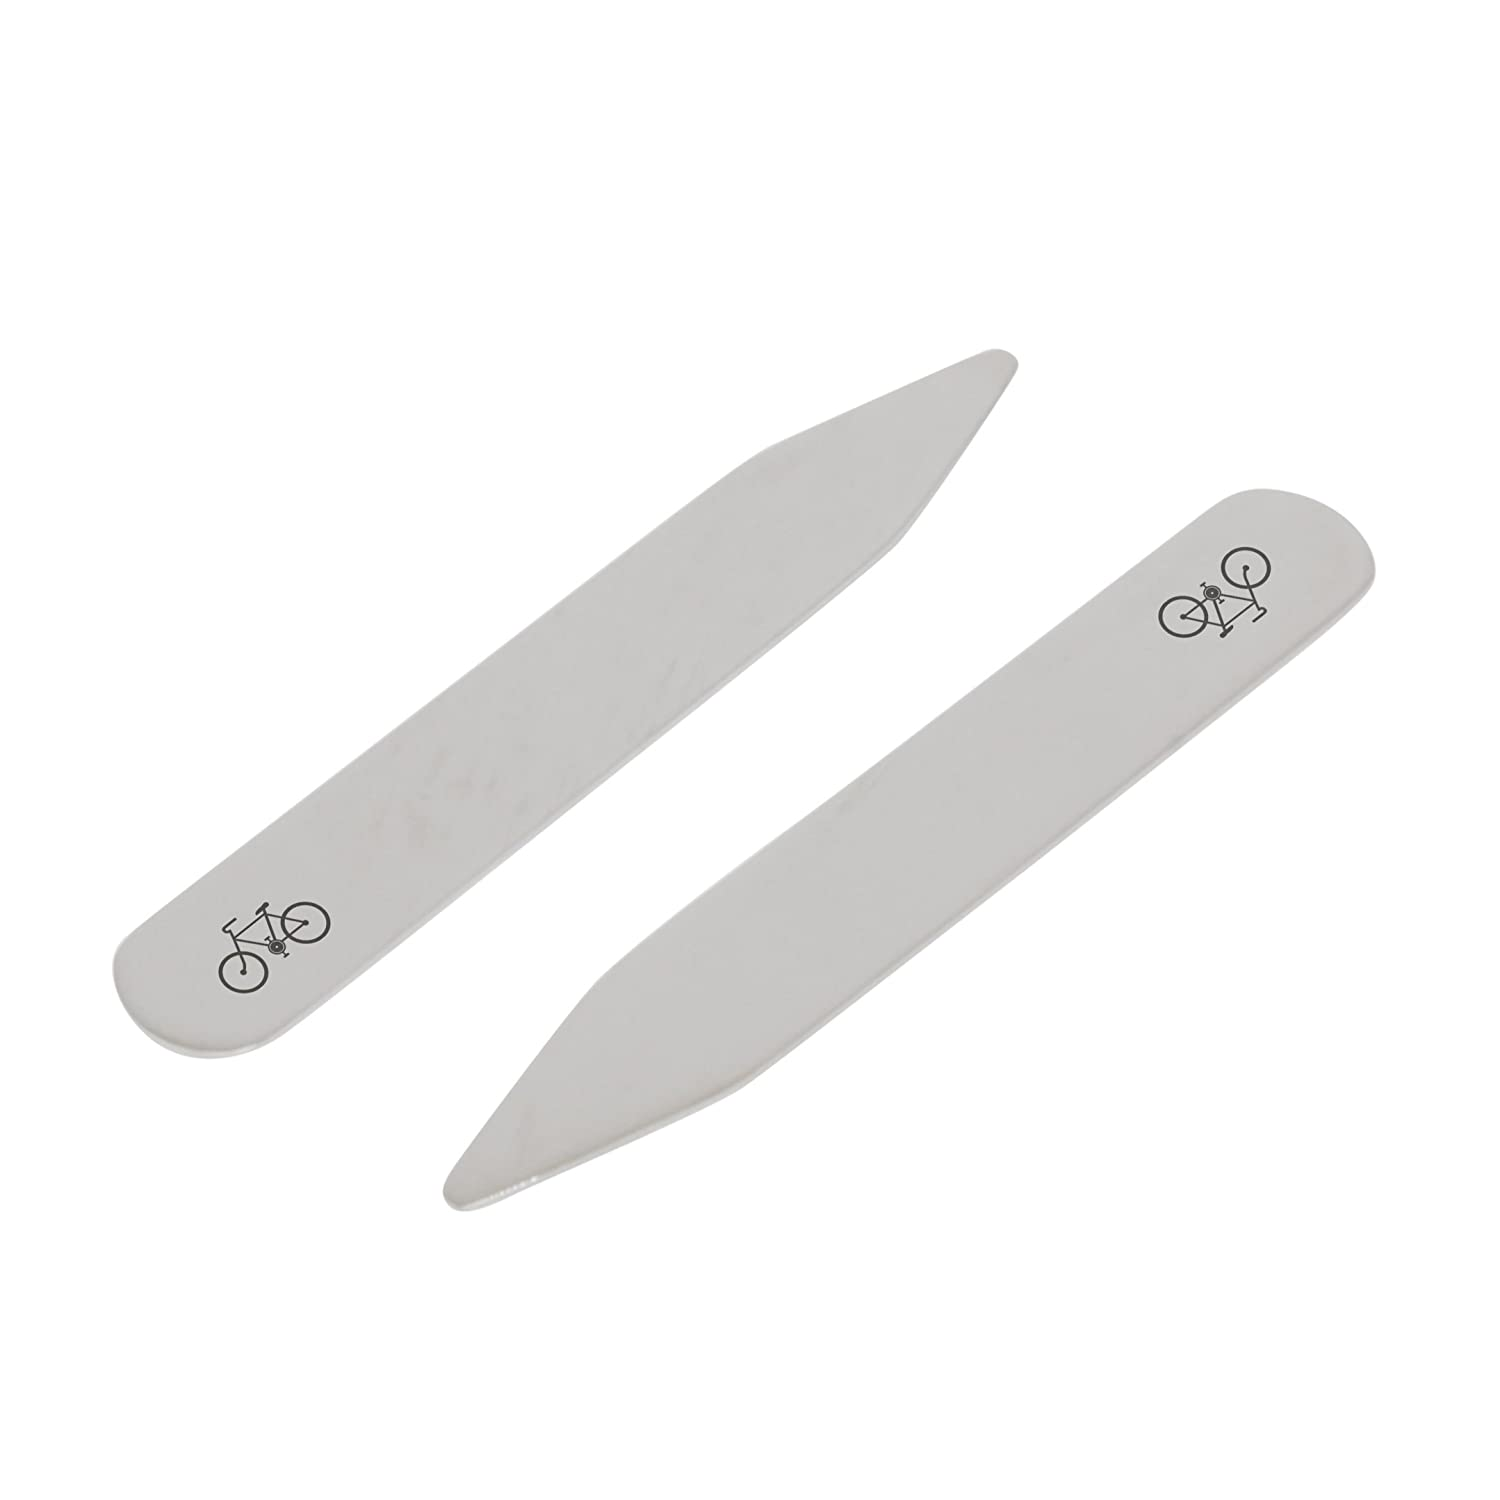 MODERN GOODS SHOP Stainless Steel Collar Stays With Laser Engraved Bicycle Design - 2.5 Inch Metal Collar Stiffeners - Made In USA